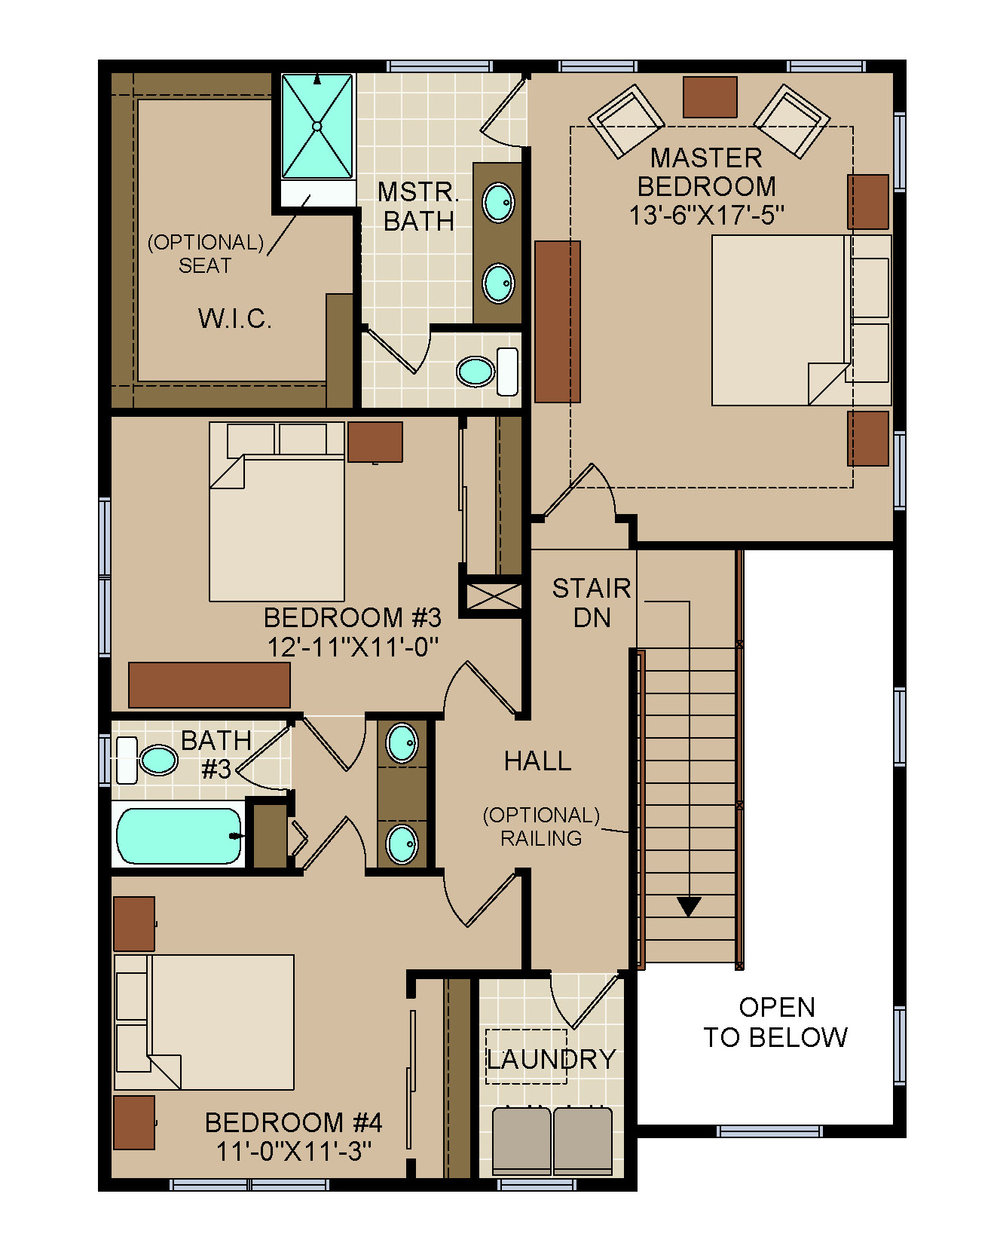 2013magnolia-secondfloorplan.jpg